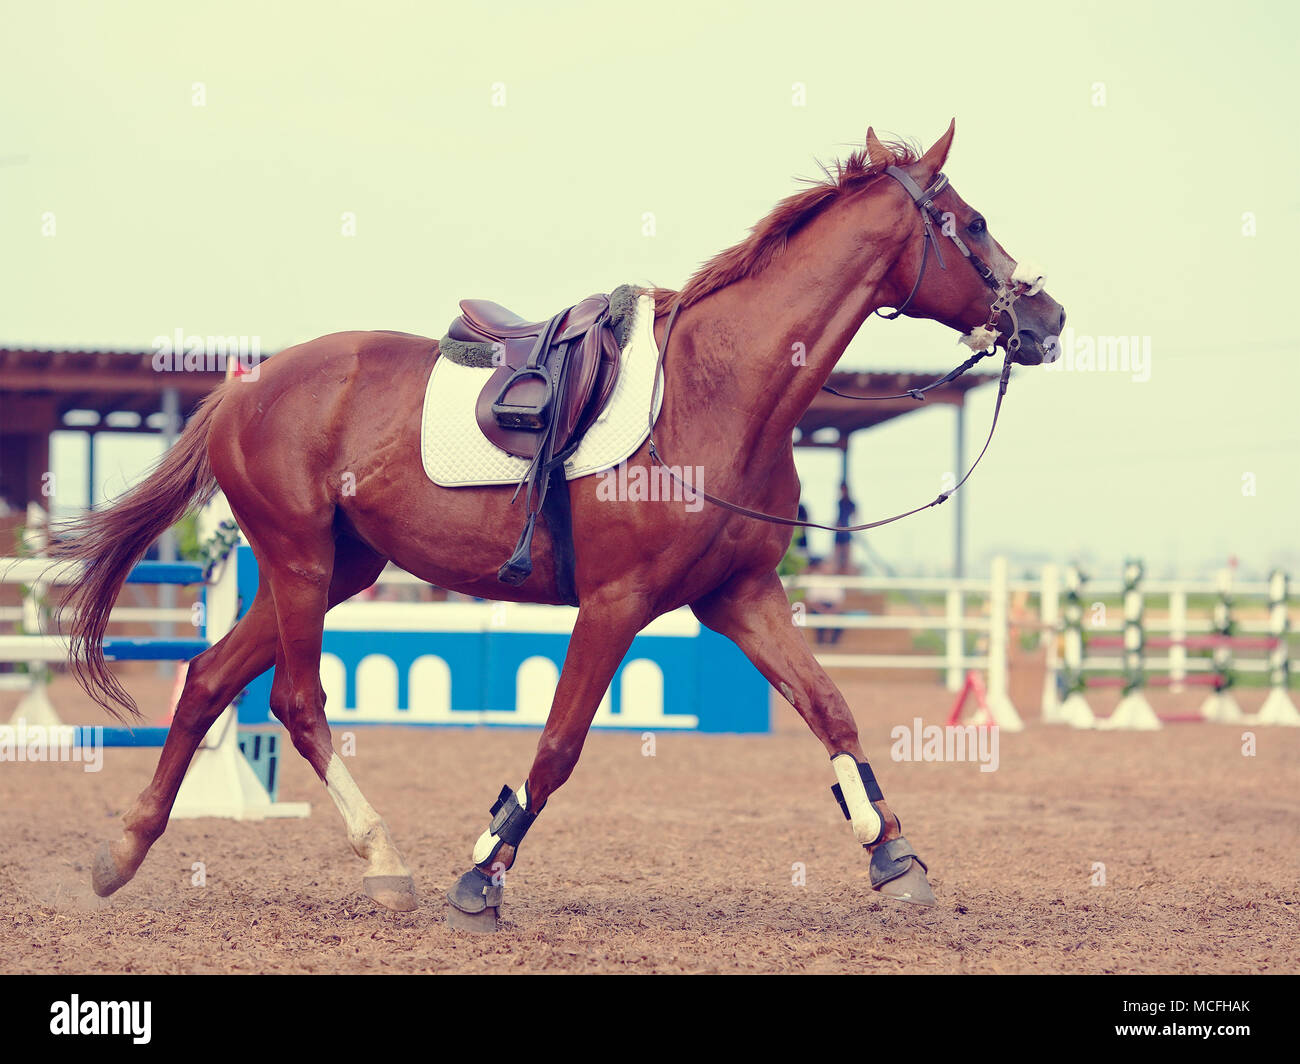 The sports horse trots in the field for competitions. - Stock Image